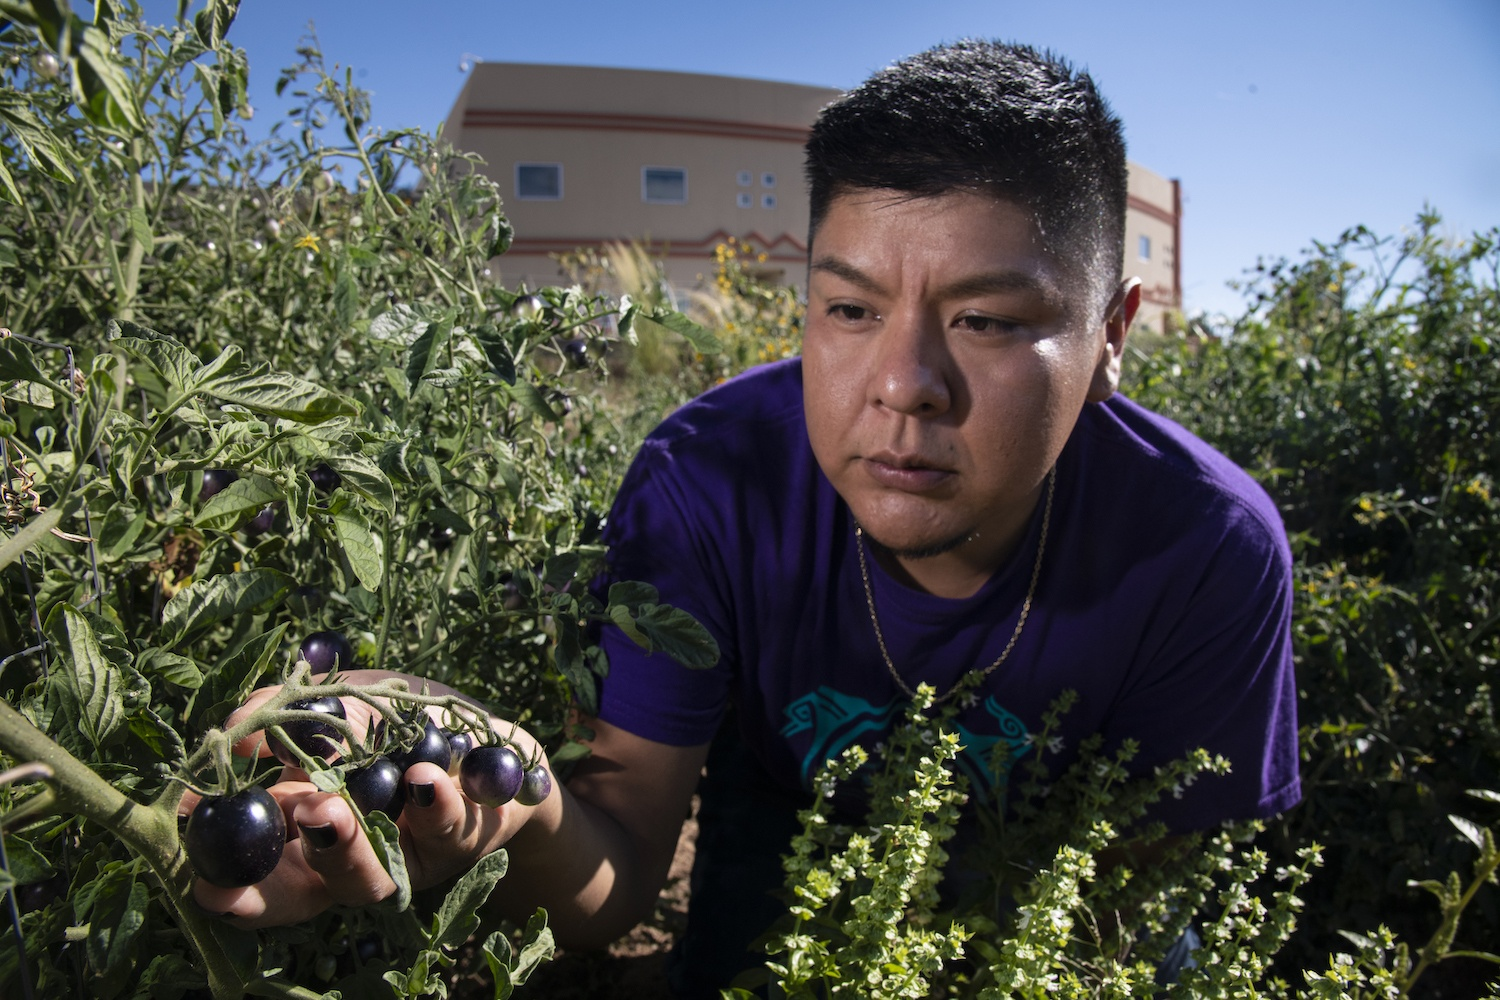 While white co-founders shill their food startup ideas in the pages of glossy magazines, Native producers and entrepreneurs struggle to attract basic press interest and investment. Left, Institute of American Indian Arts (IAIA) research assistant Kyle Kootswaytewa checks on the health of black tomatoes in the IAIA Demonstration Garden, in Santa Fe, NM, on Sept. 11, 2019.